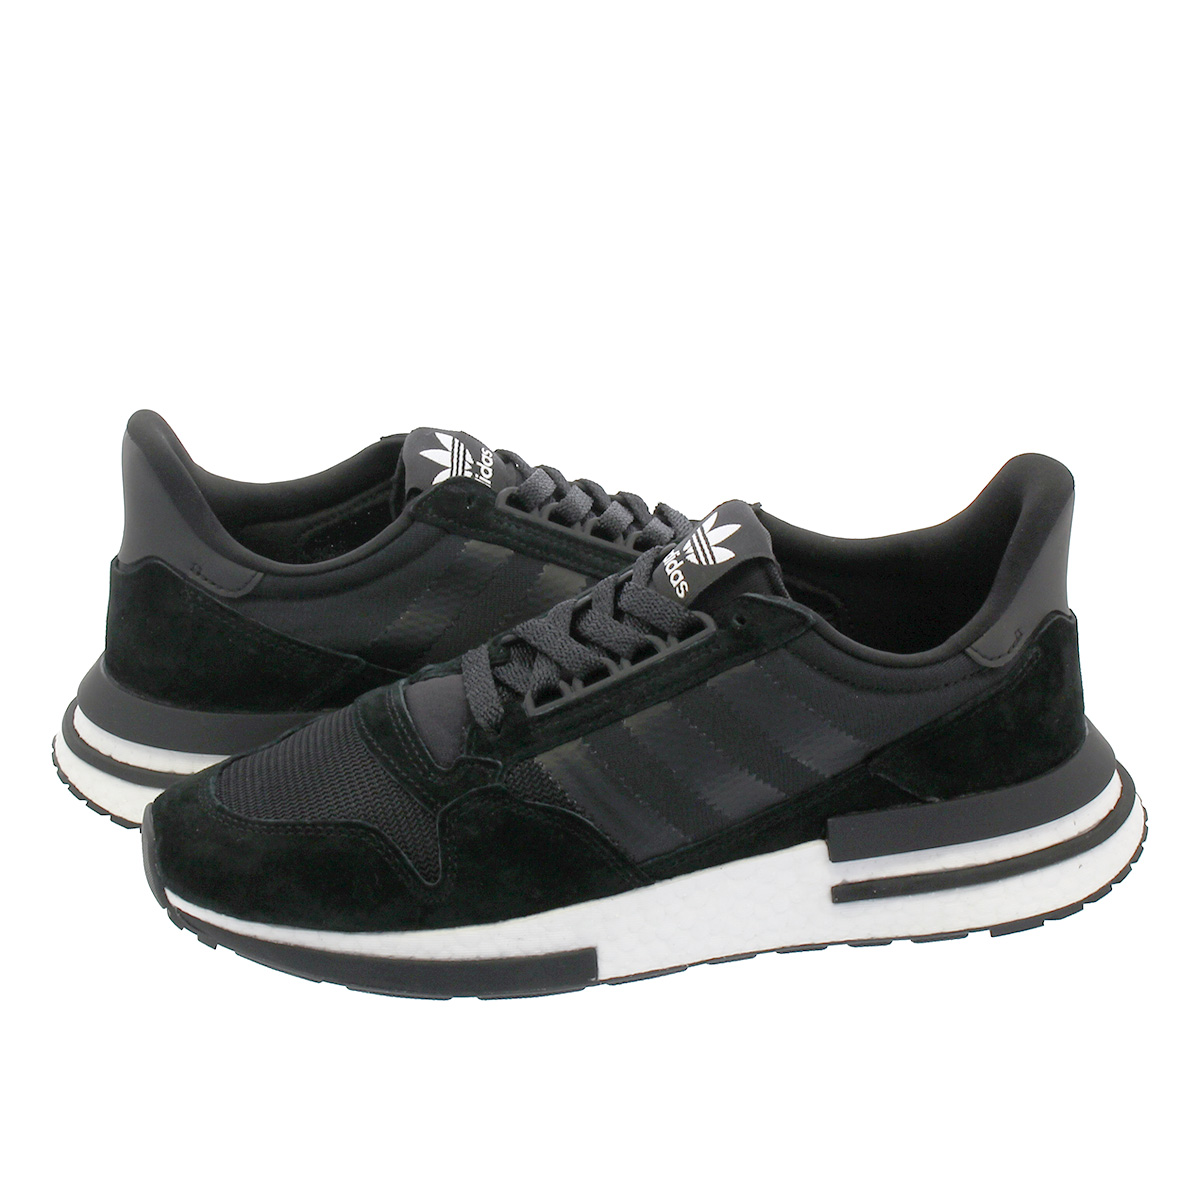 timeless design be498 b9cf1 adidas ZX 500 RM Adidas ZX 500 RM CORE BLACK/RUNNING WHITE b42227